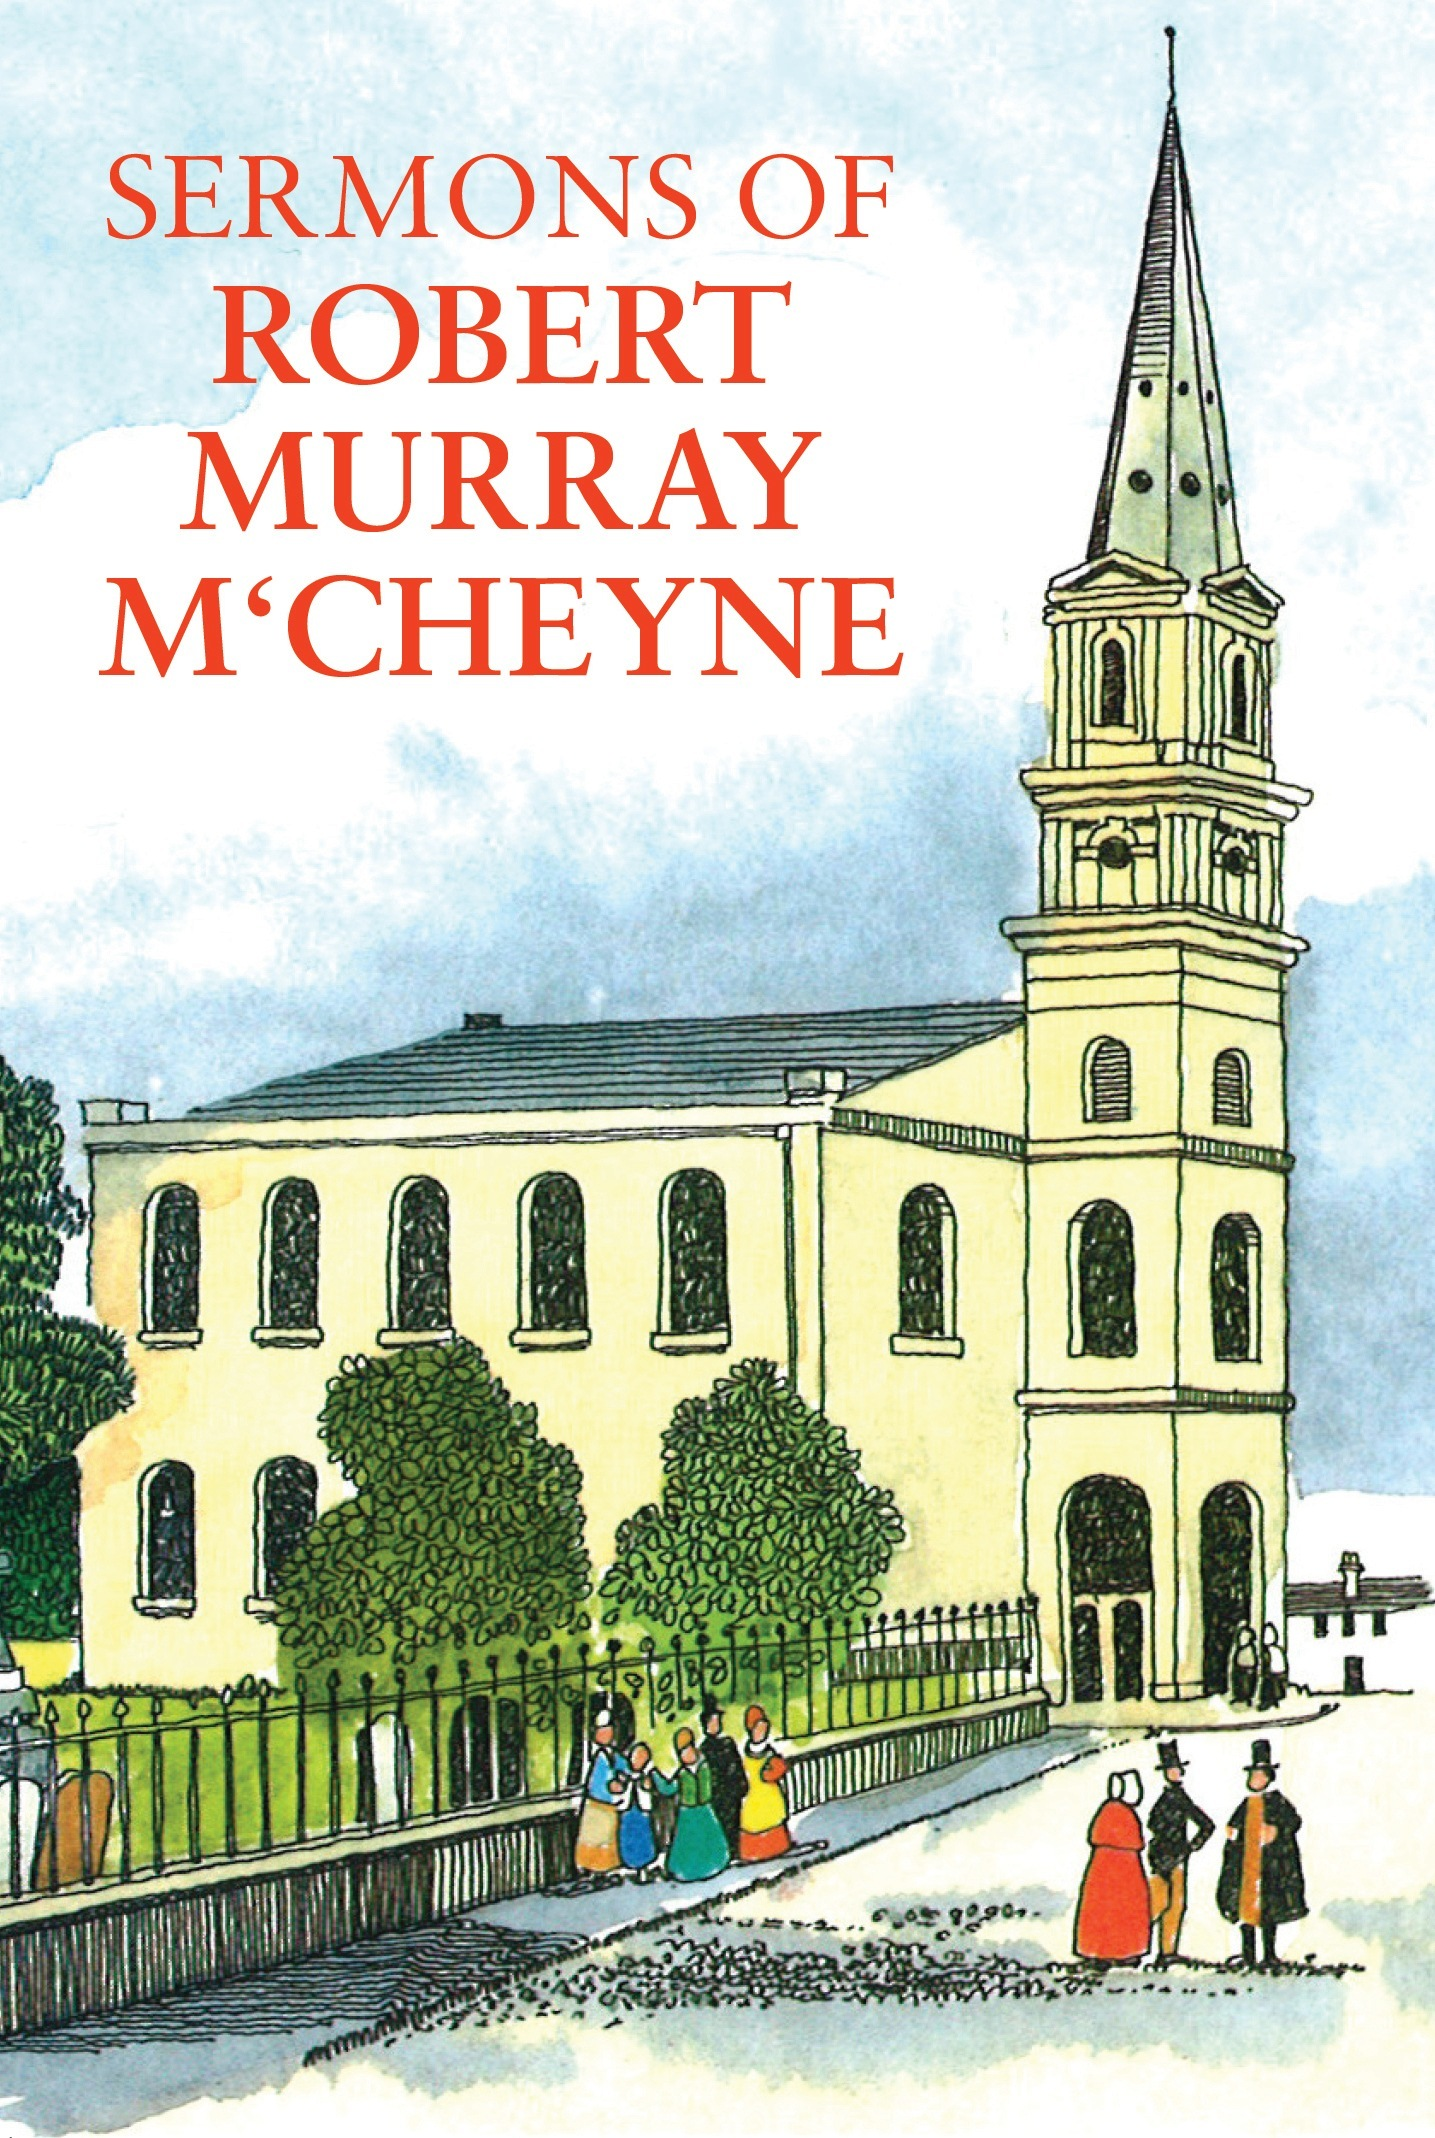 cover image for Sermons of Robert Murray M'Cheyne